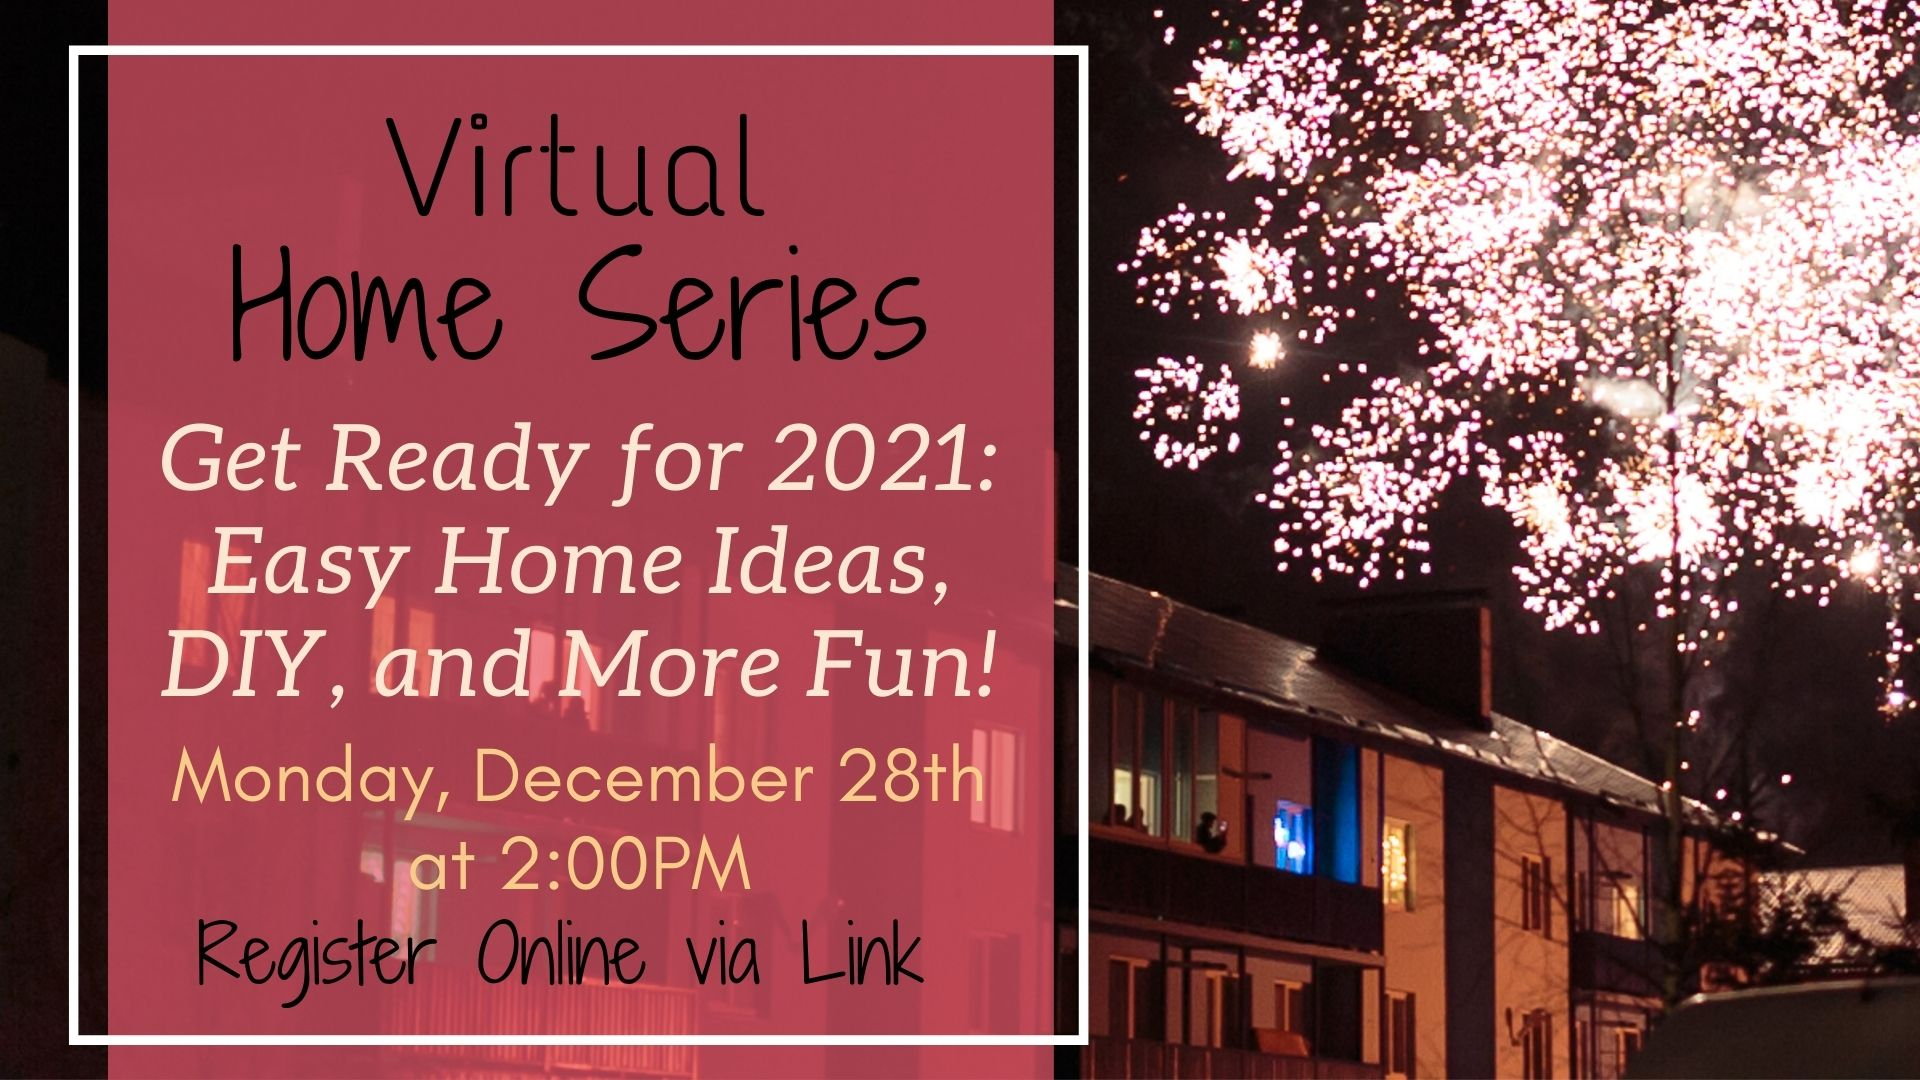 Virtual Home Series: Get Ready for 2021: Easy Home Ideas, DIY, and More Fun!